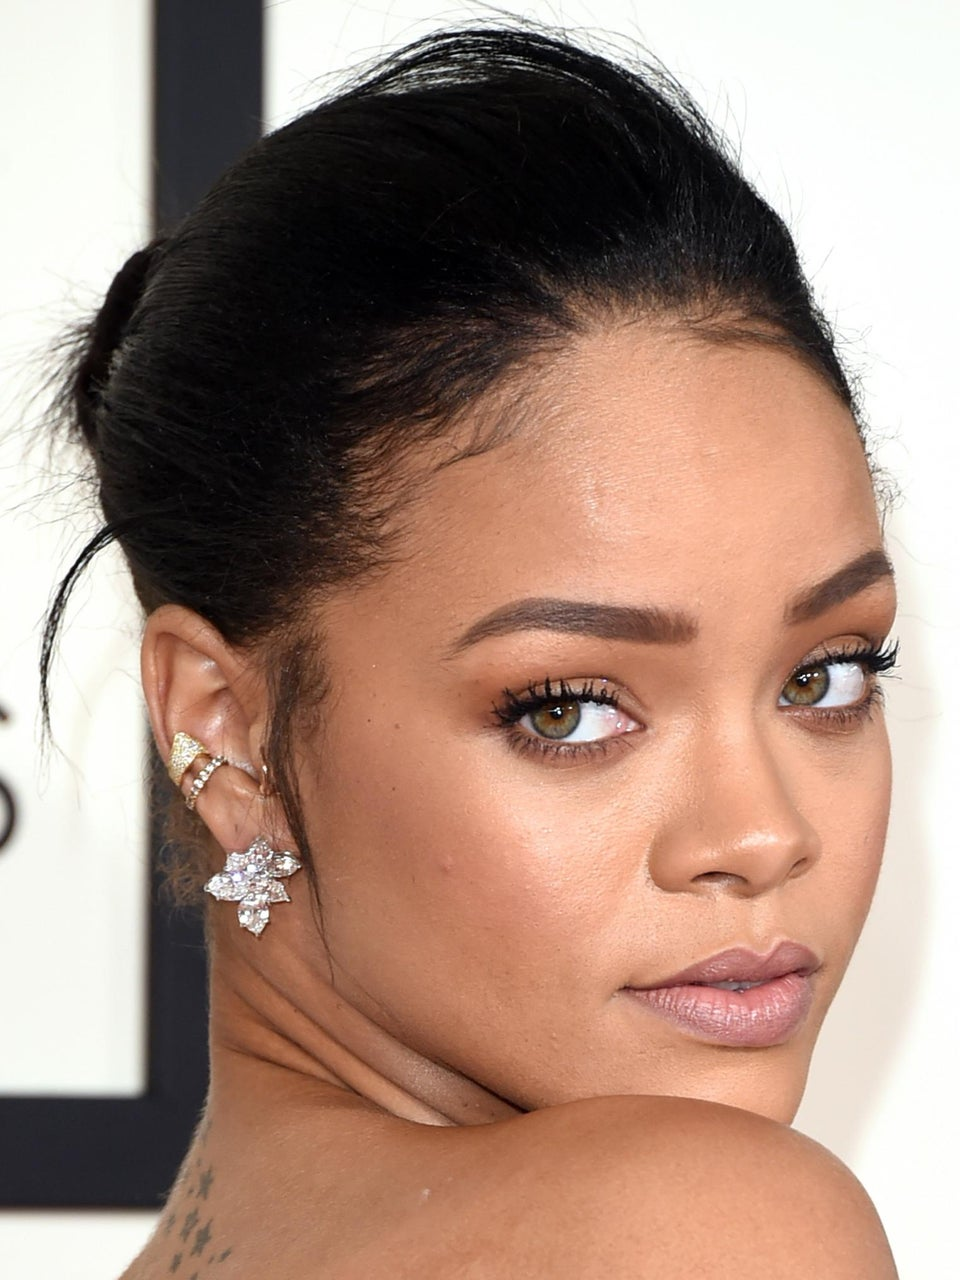 Rihanna On Being a Young Black Woman With Power